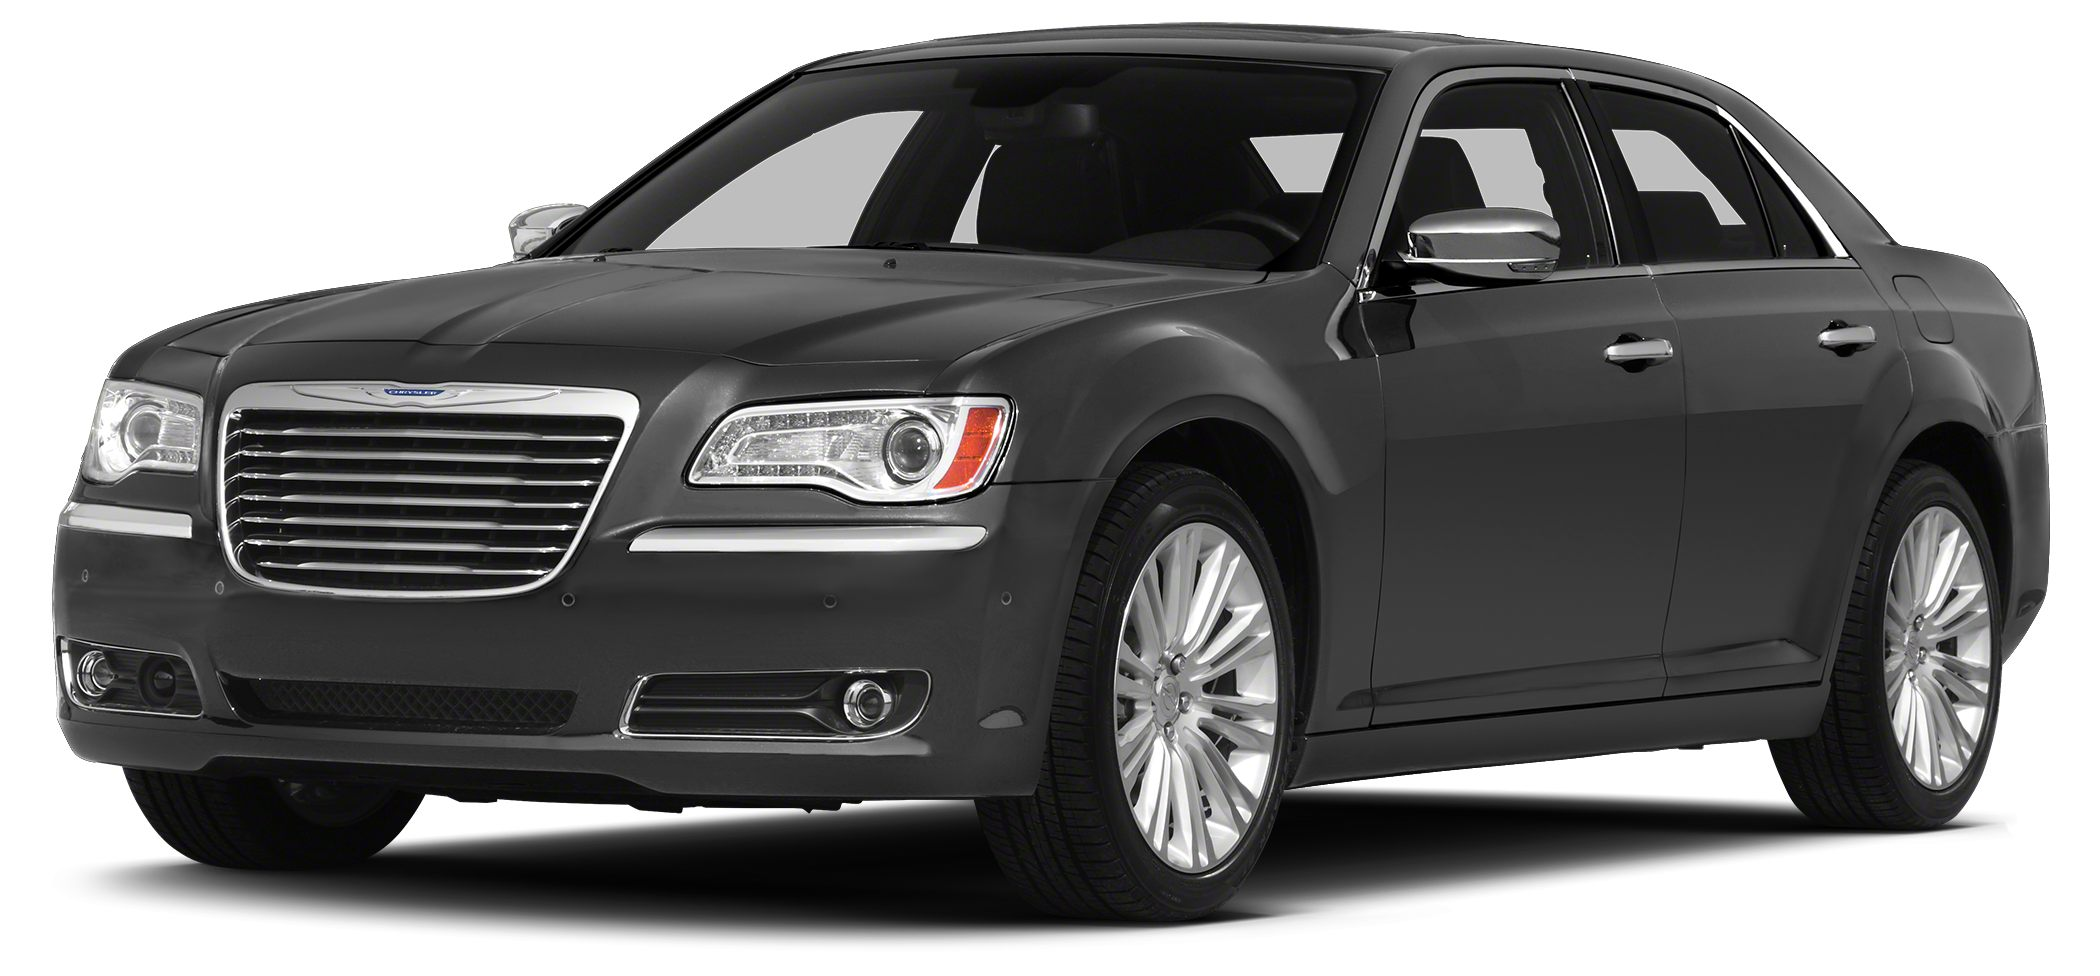 2014 Chrysler 300 Base DISCLAIMER We are excited to offer this vehicle to you but it is currently